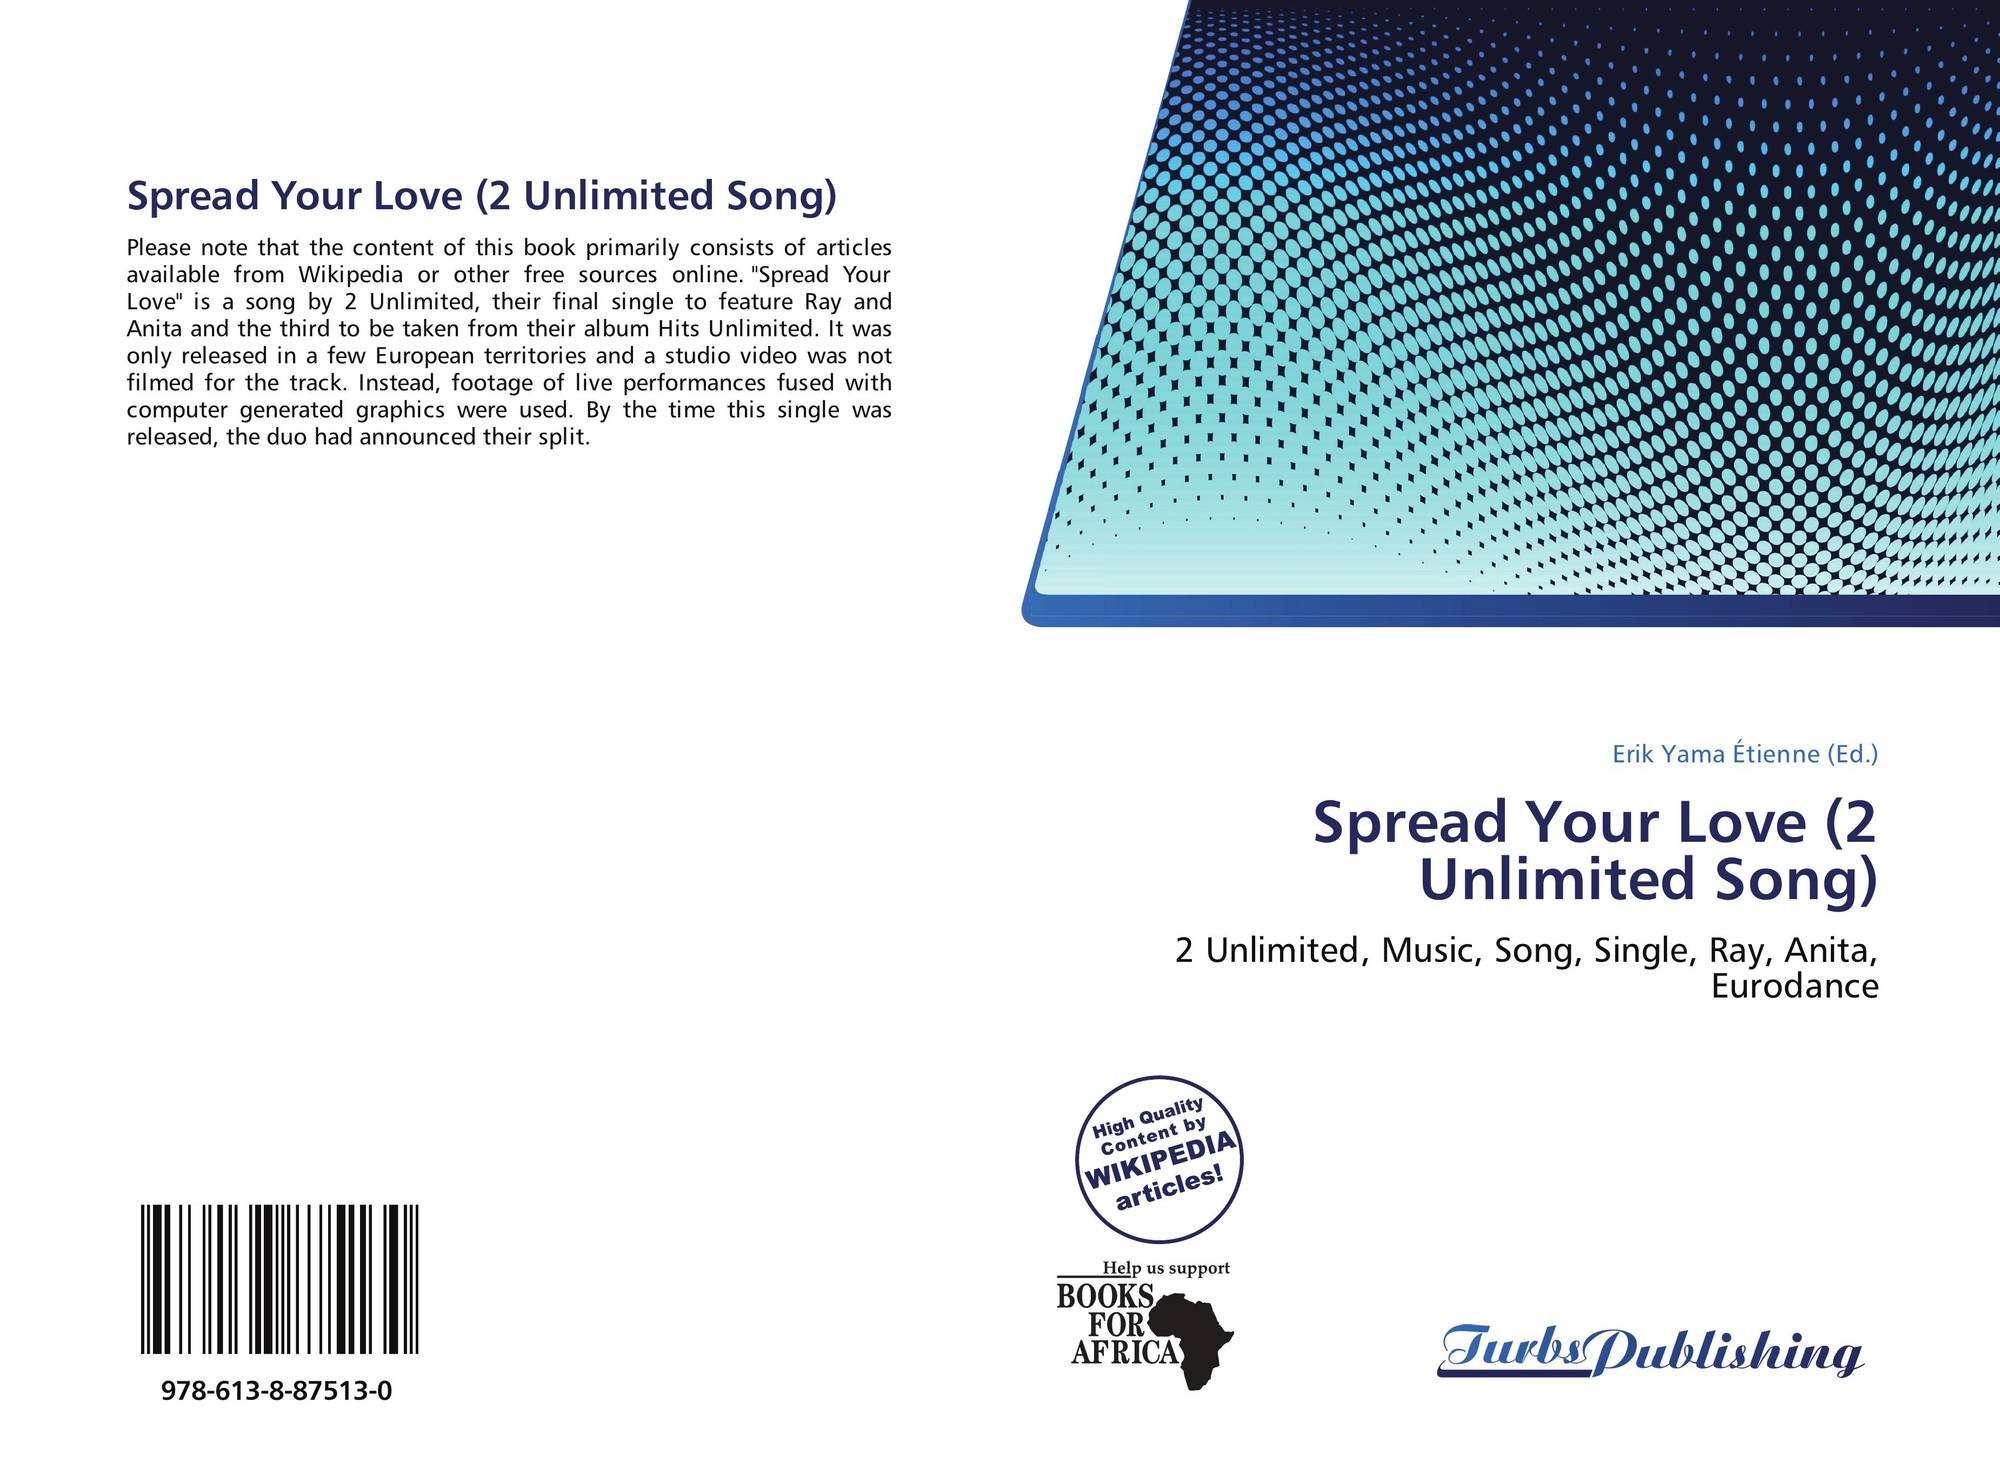 2 Unlimited Spread Your Love